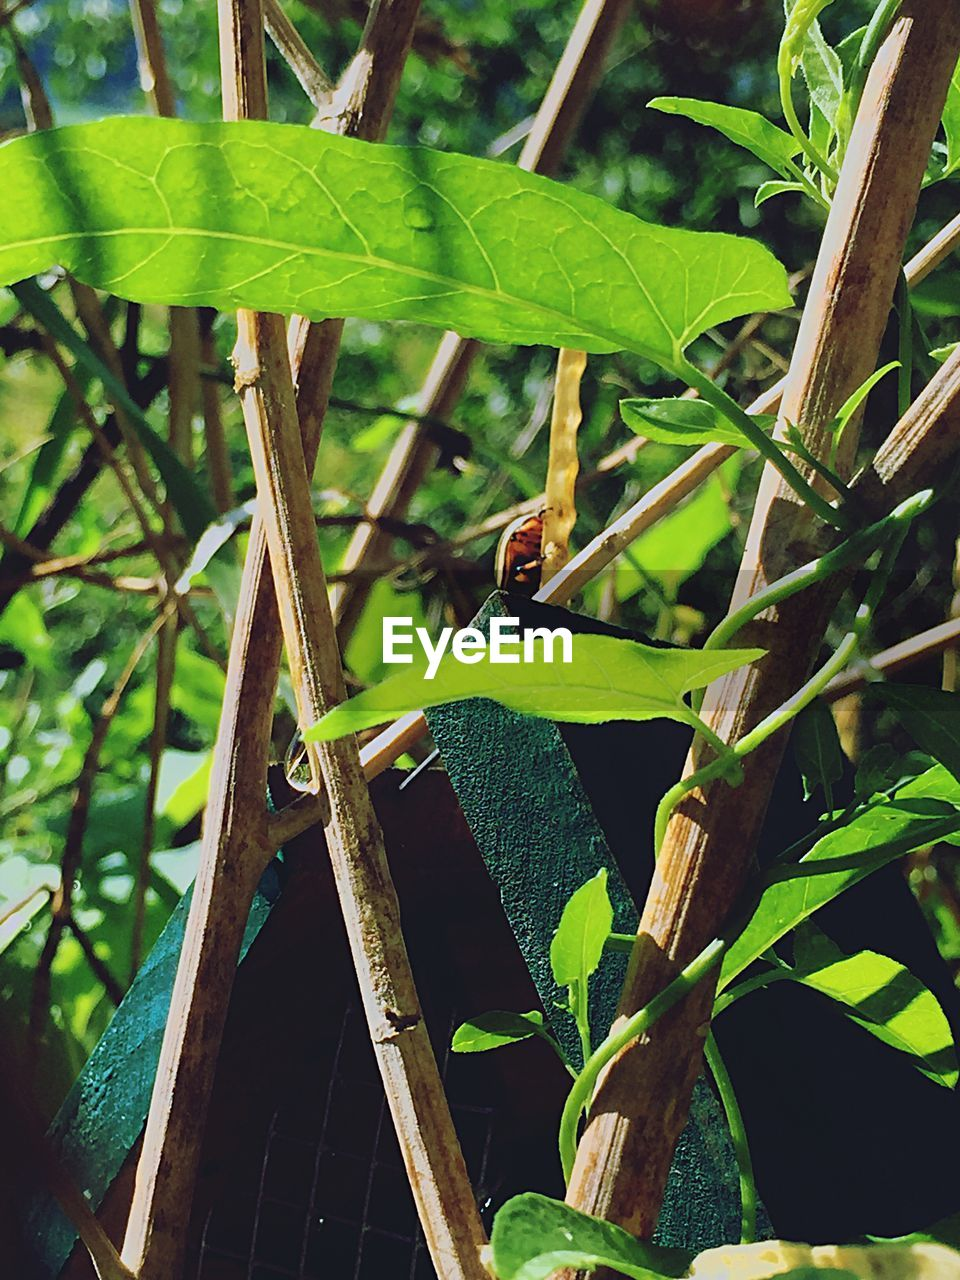 leaf, growth, green color, plant, day, nature, outdoors, no people, focus on foreground, close-up, animals in the wild, agriculture, banana tree, beauty in nature, animal themes, freshness